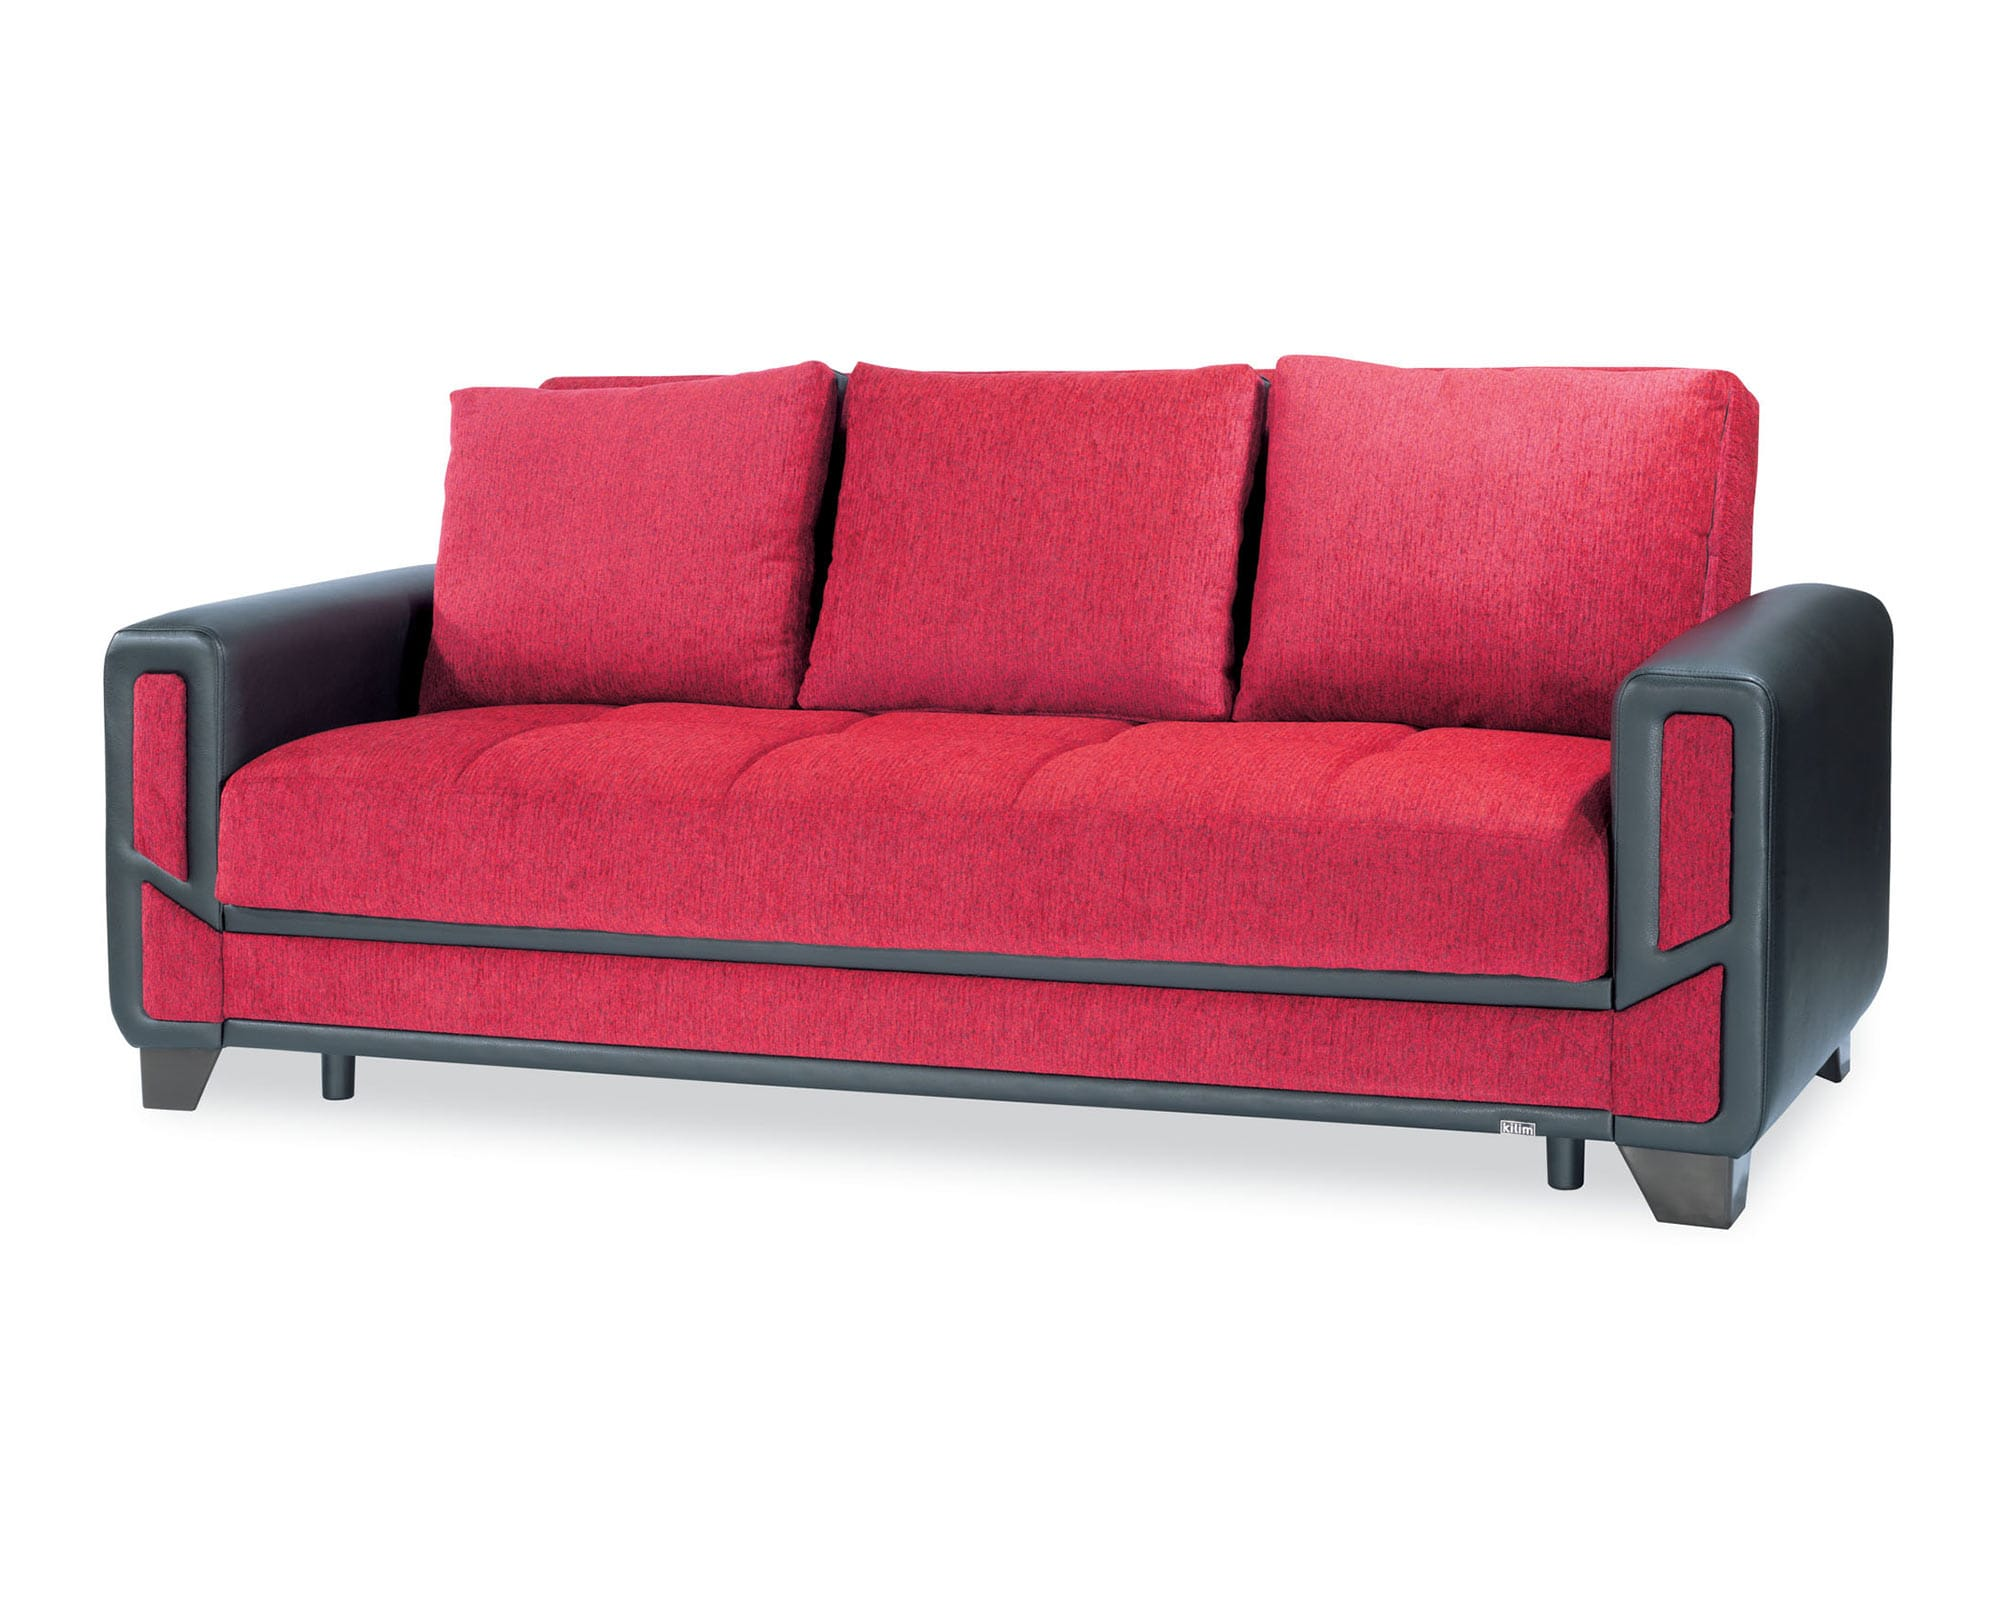 Red Sofa Bed | 20.jpvou.djrachael.com